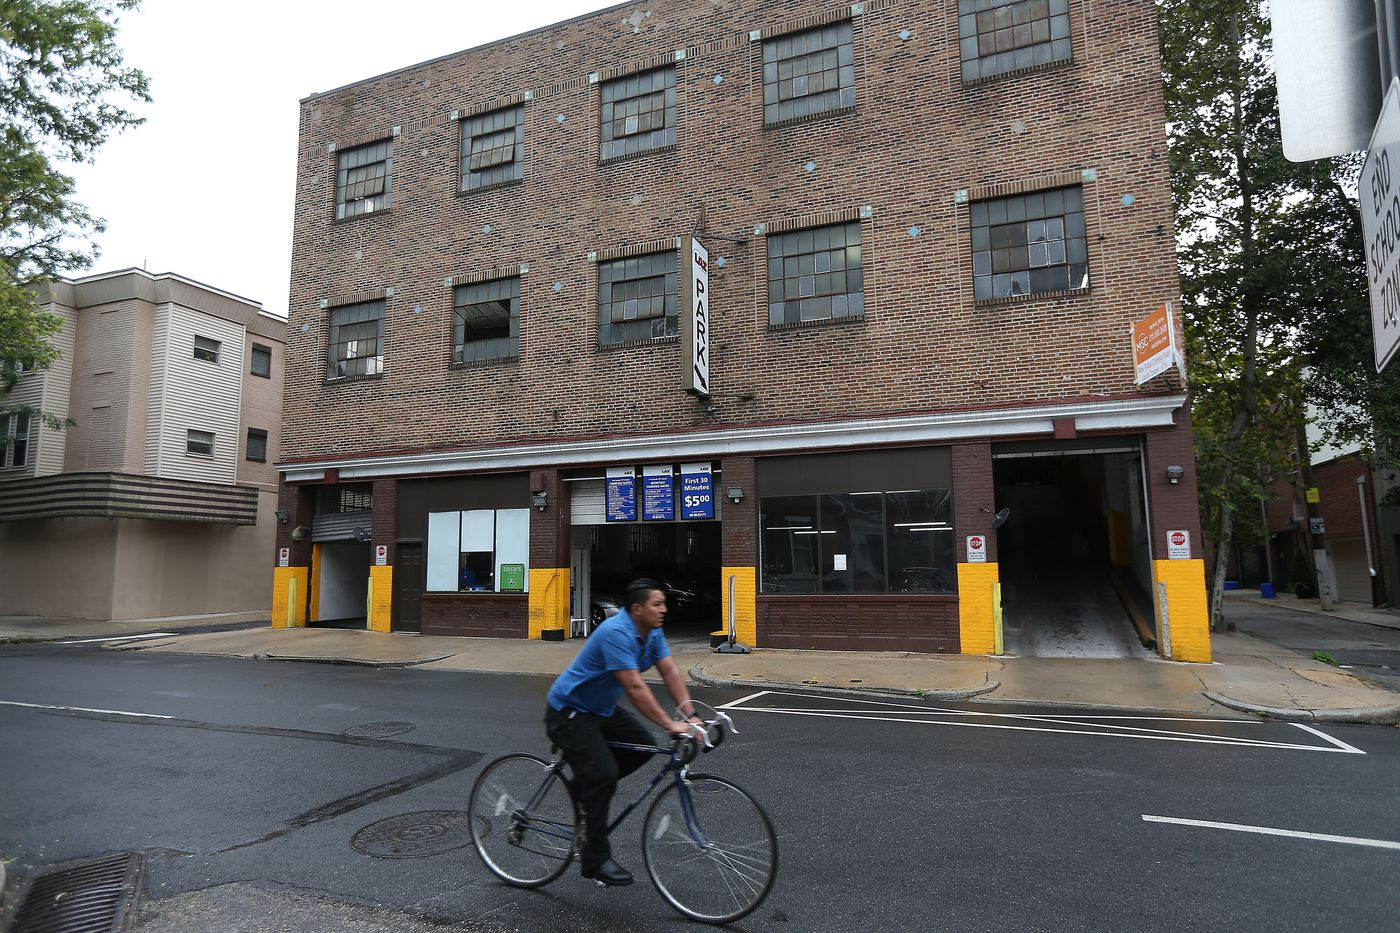 Is Philly's parking tax too high? Garage owners blame it for rising cost of parking